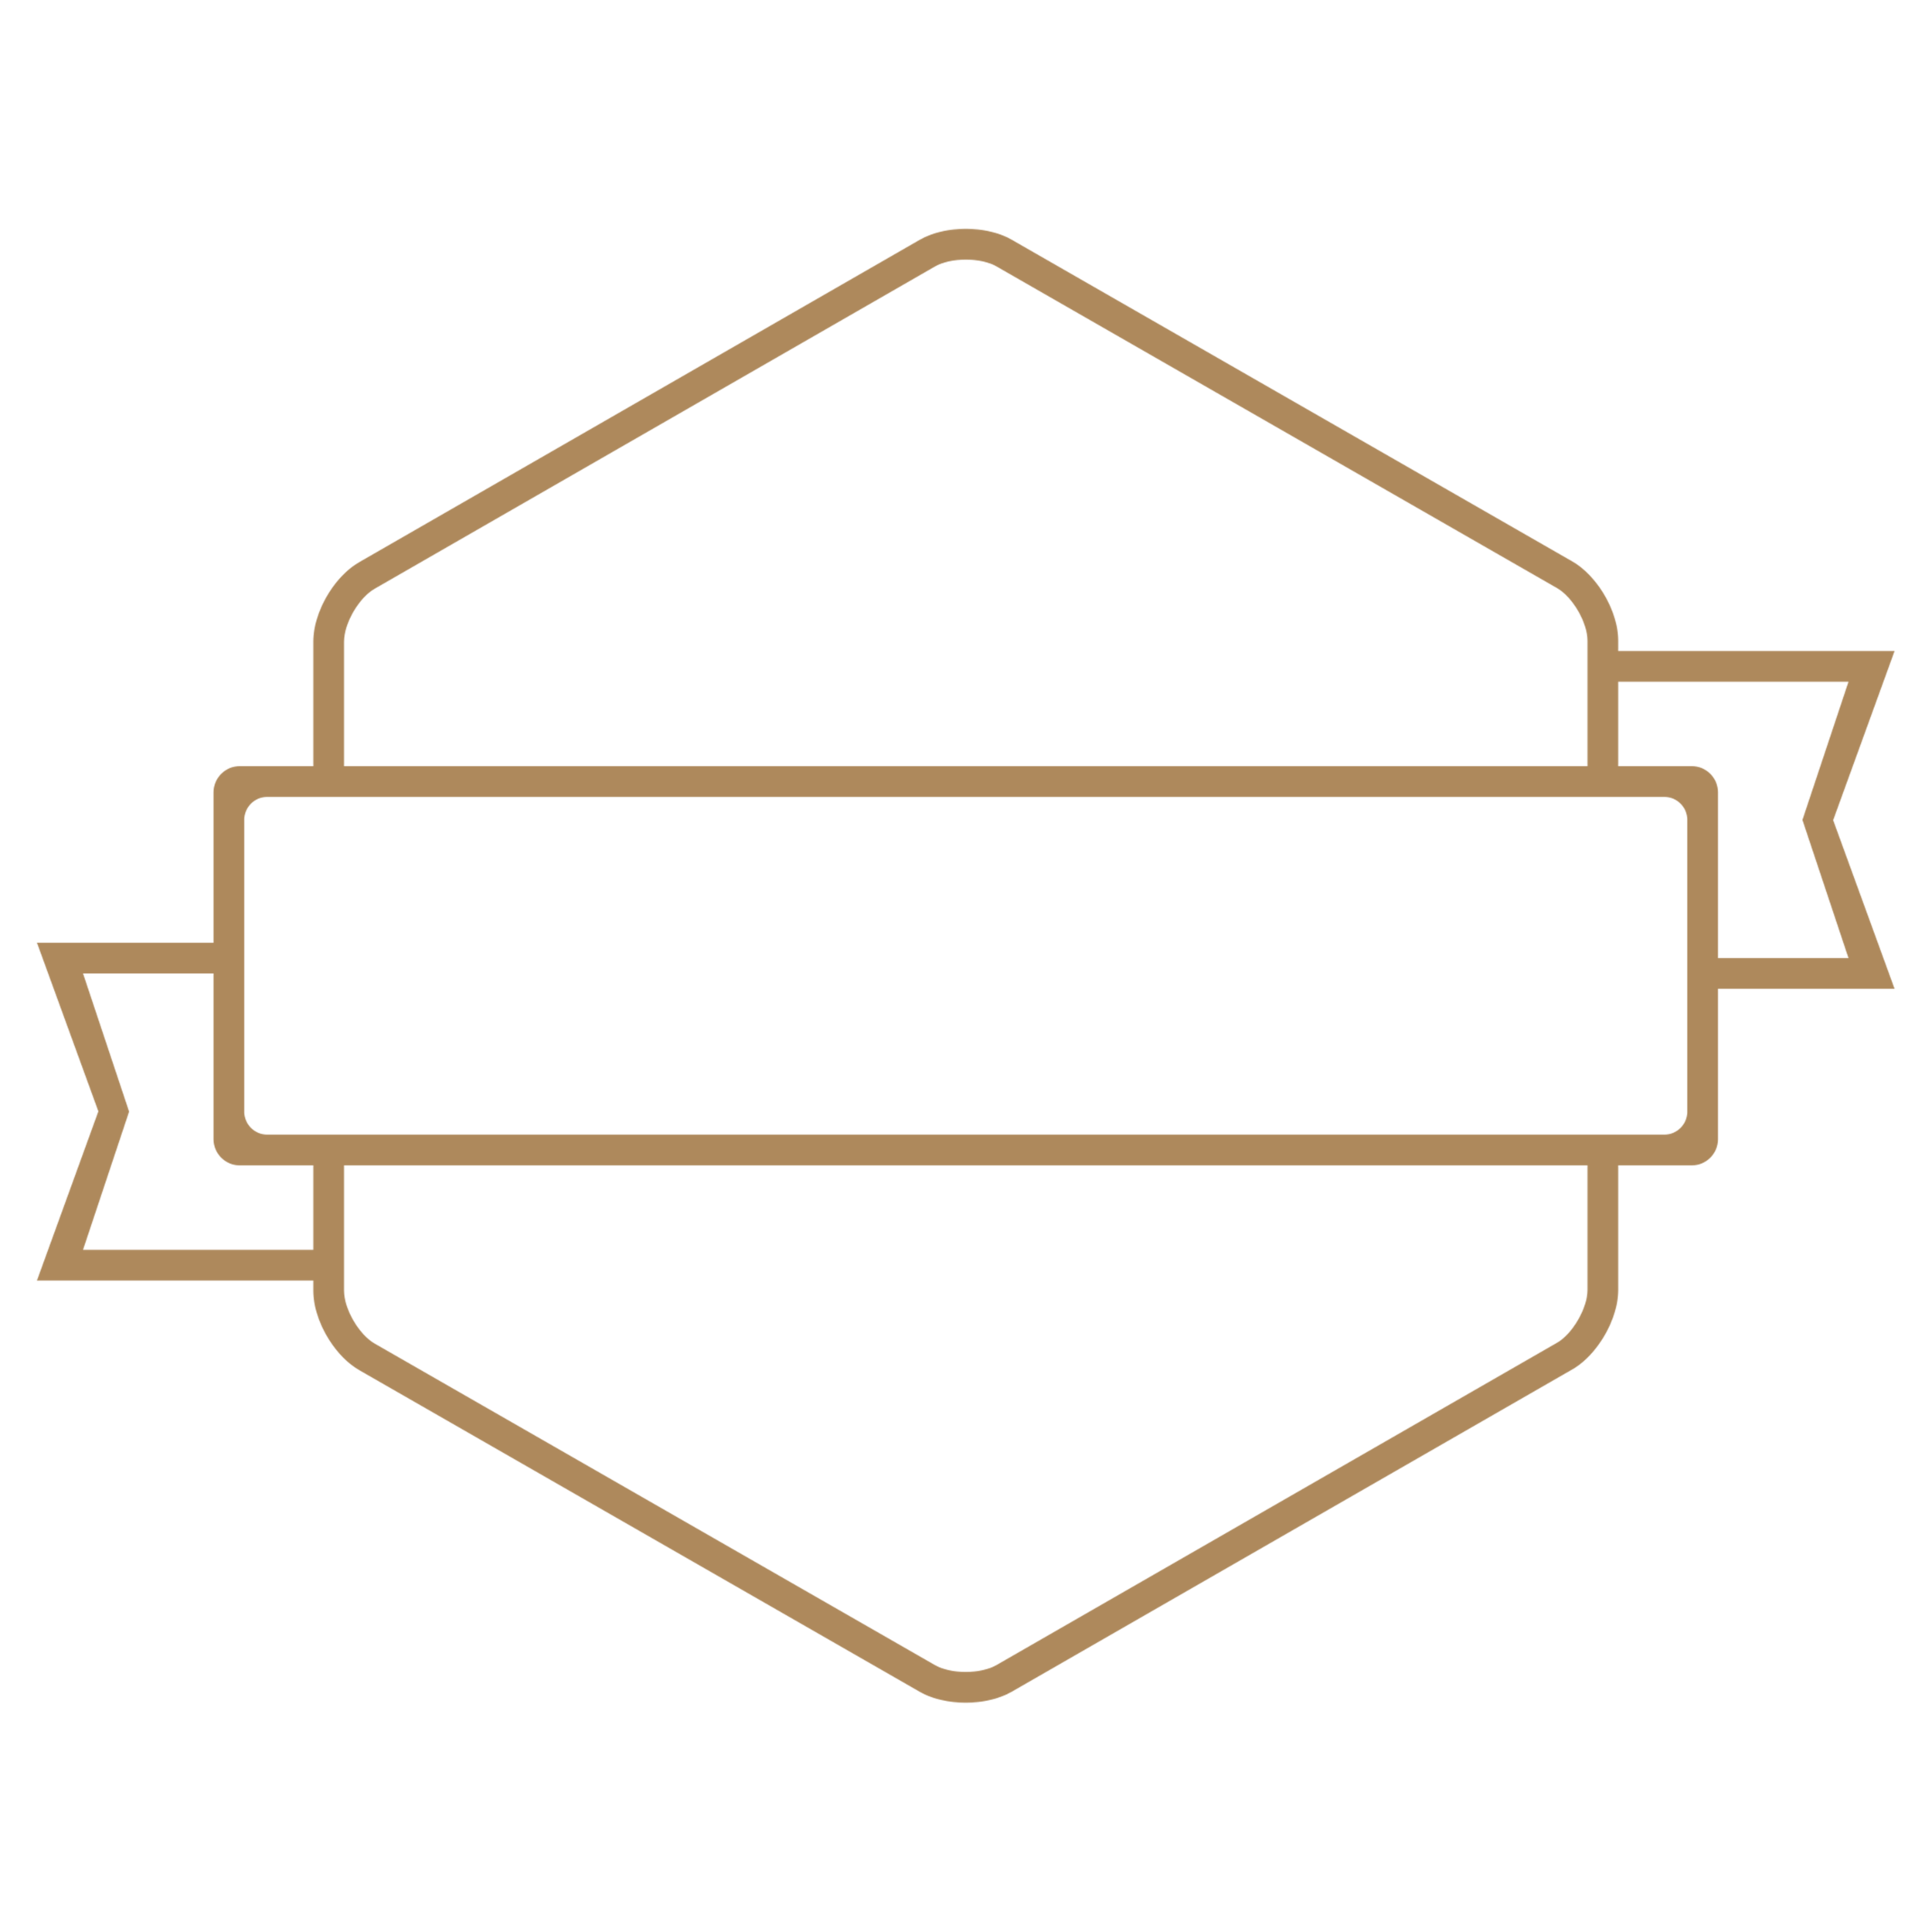 CaffeneoW.png